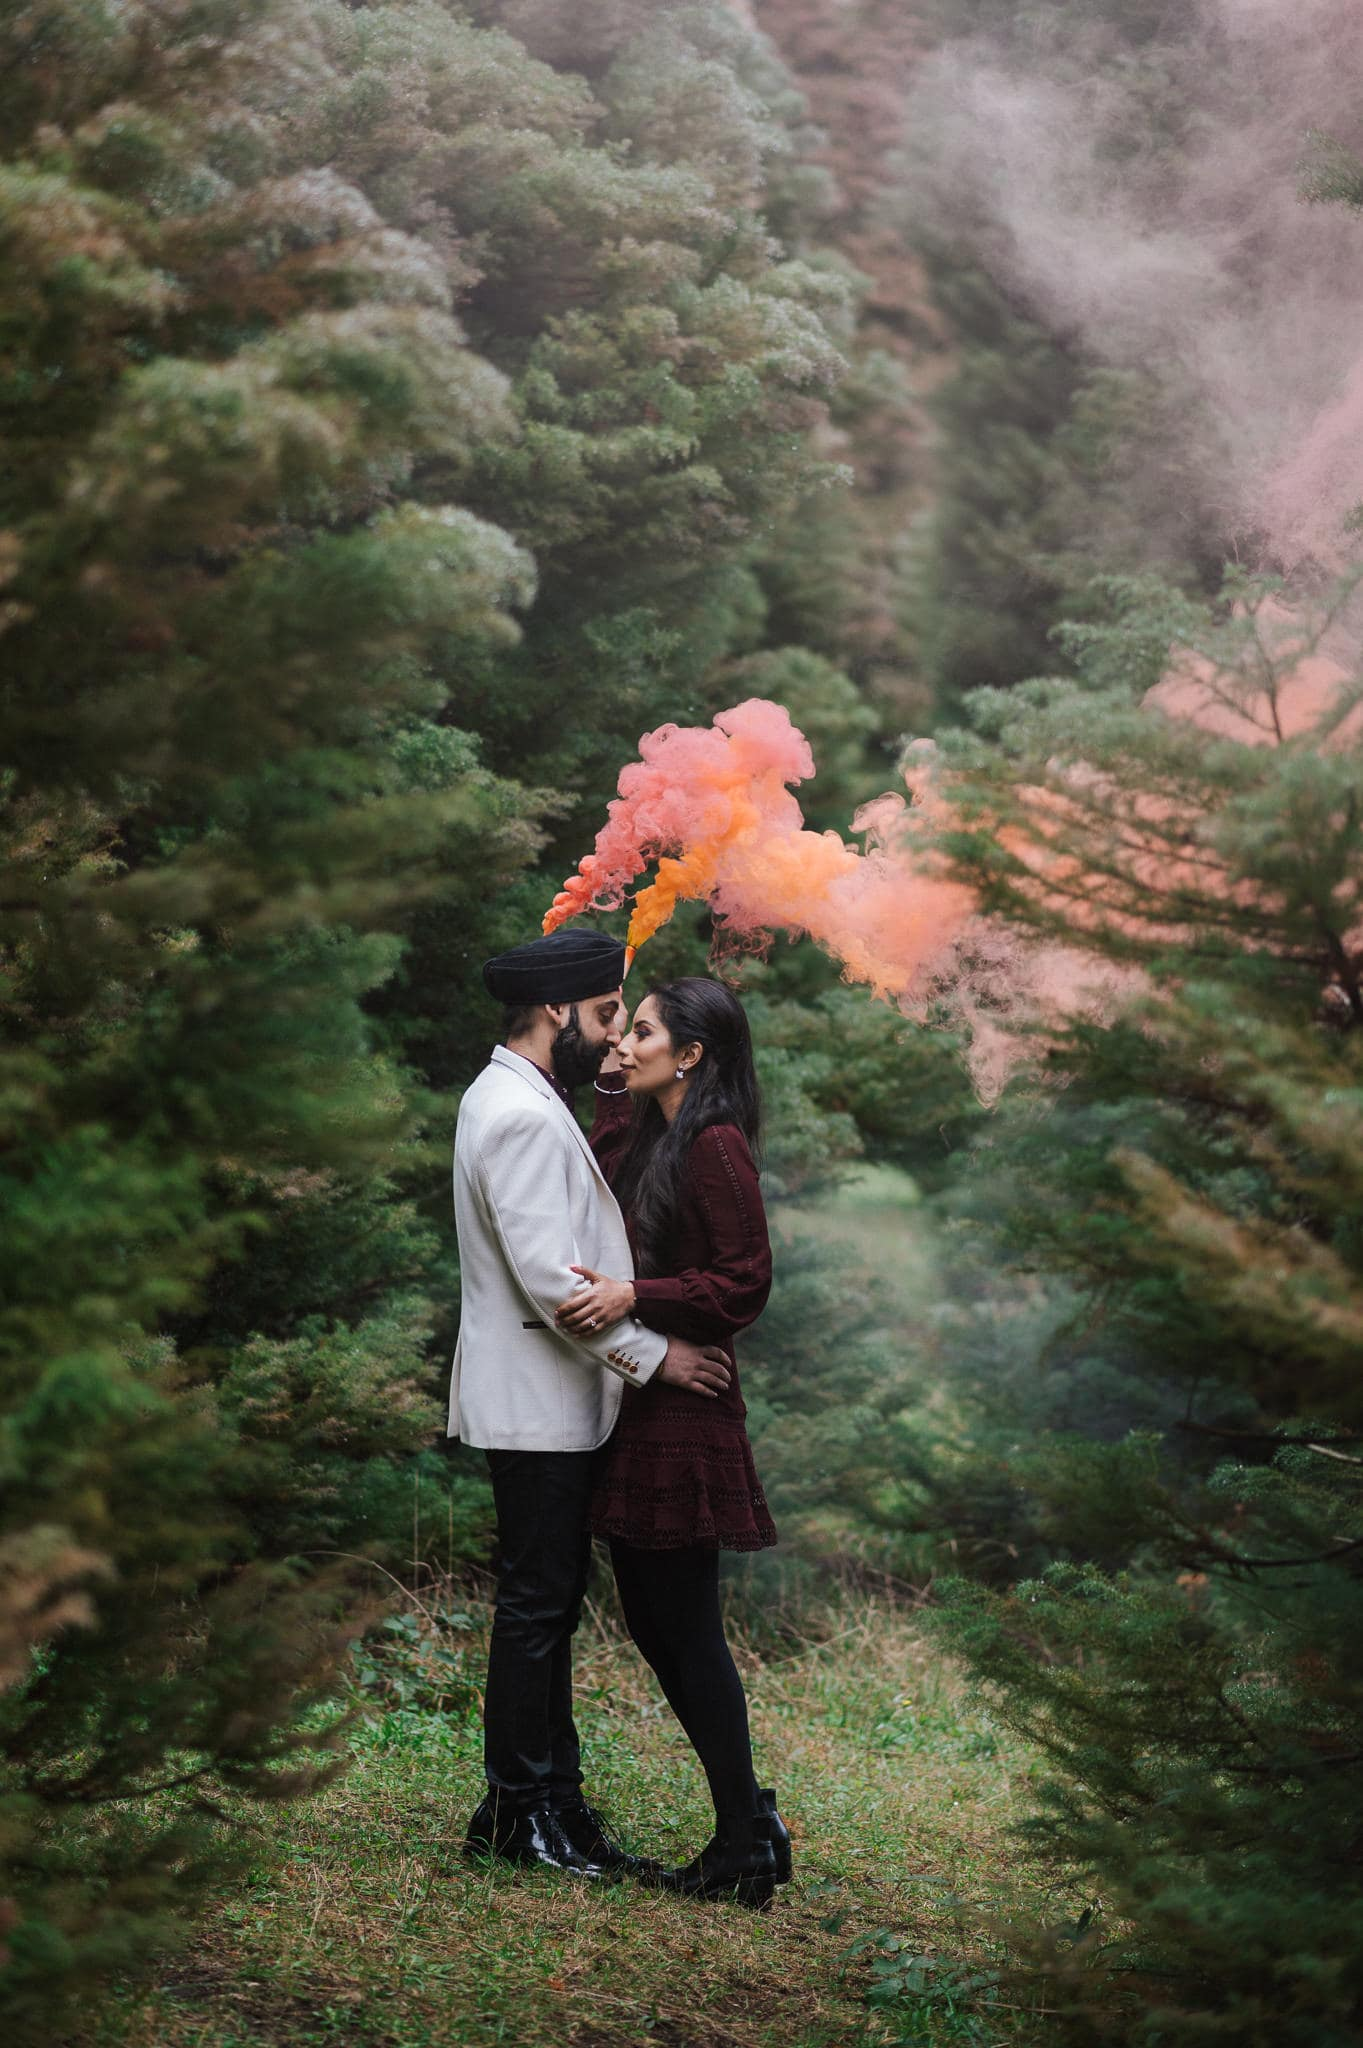 Simran and Anmol's Vibrant and Modern Sikh Wedding Celebration in Melbourne. Wedding Photography captured by Bhargav Boppa. We love how the couple incorporated smoke bombs into their pre-wedding photoshoot. Go behind the scenes on The Maharani Diaries now.